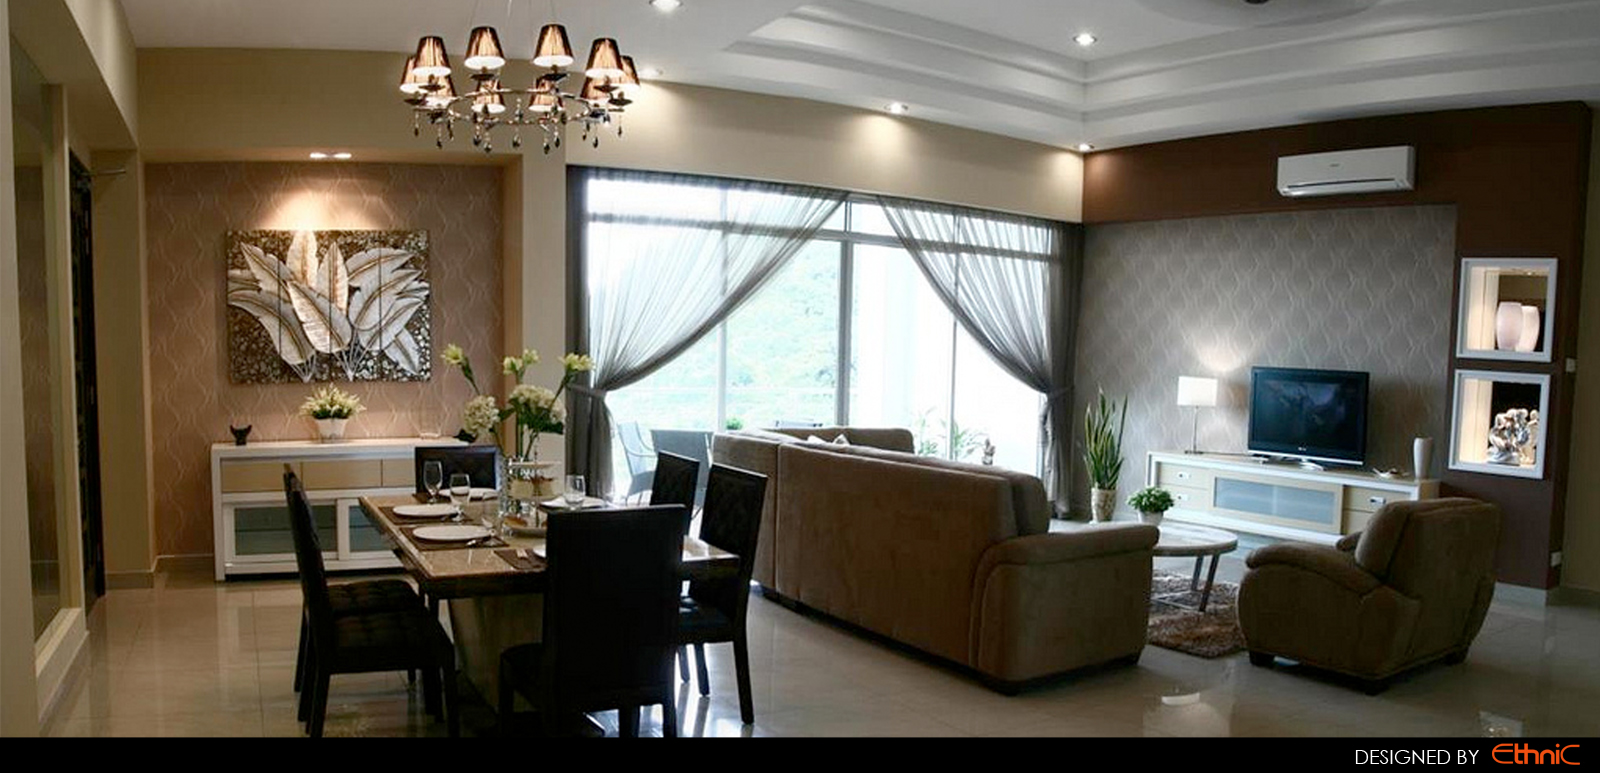 Ethnic Interior Design And Furniture Penang ~ Ethnic penang interior design and furniture nick chan